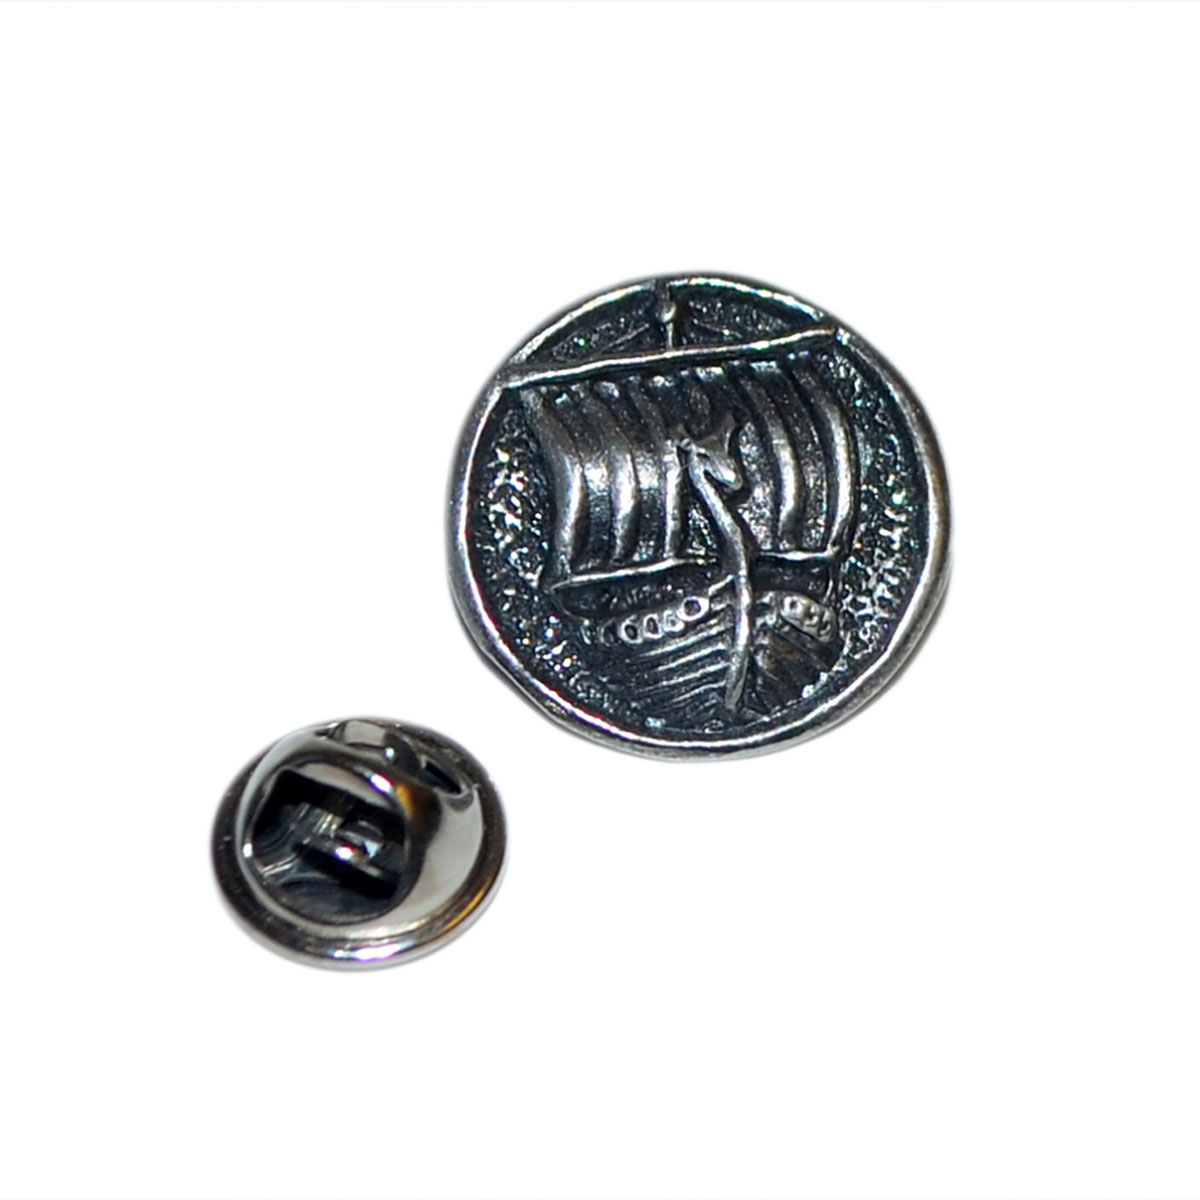 Details about Viking Longboat Lapel Pin Pin Back Badge In British Pewter Gifts For Him